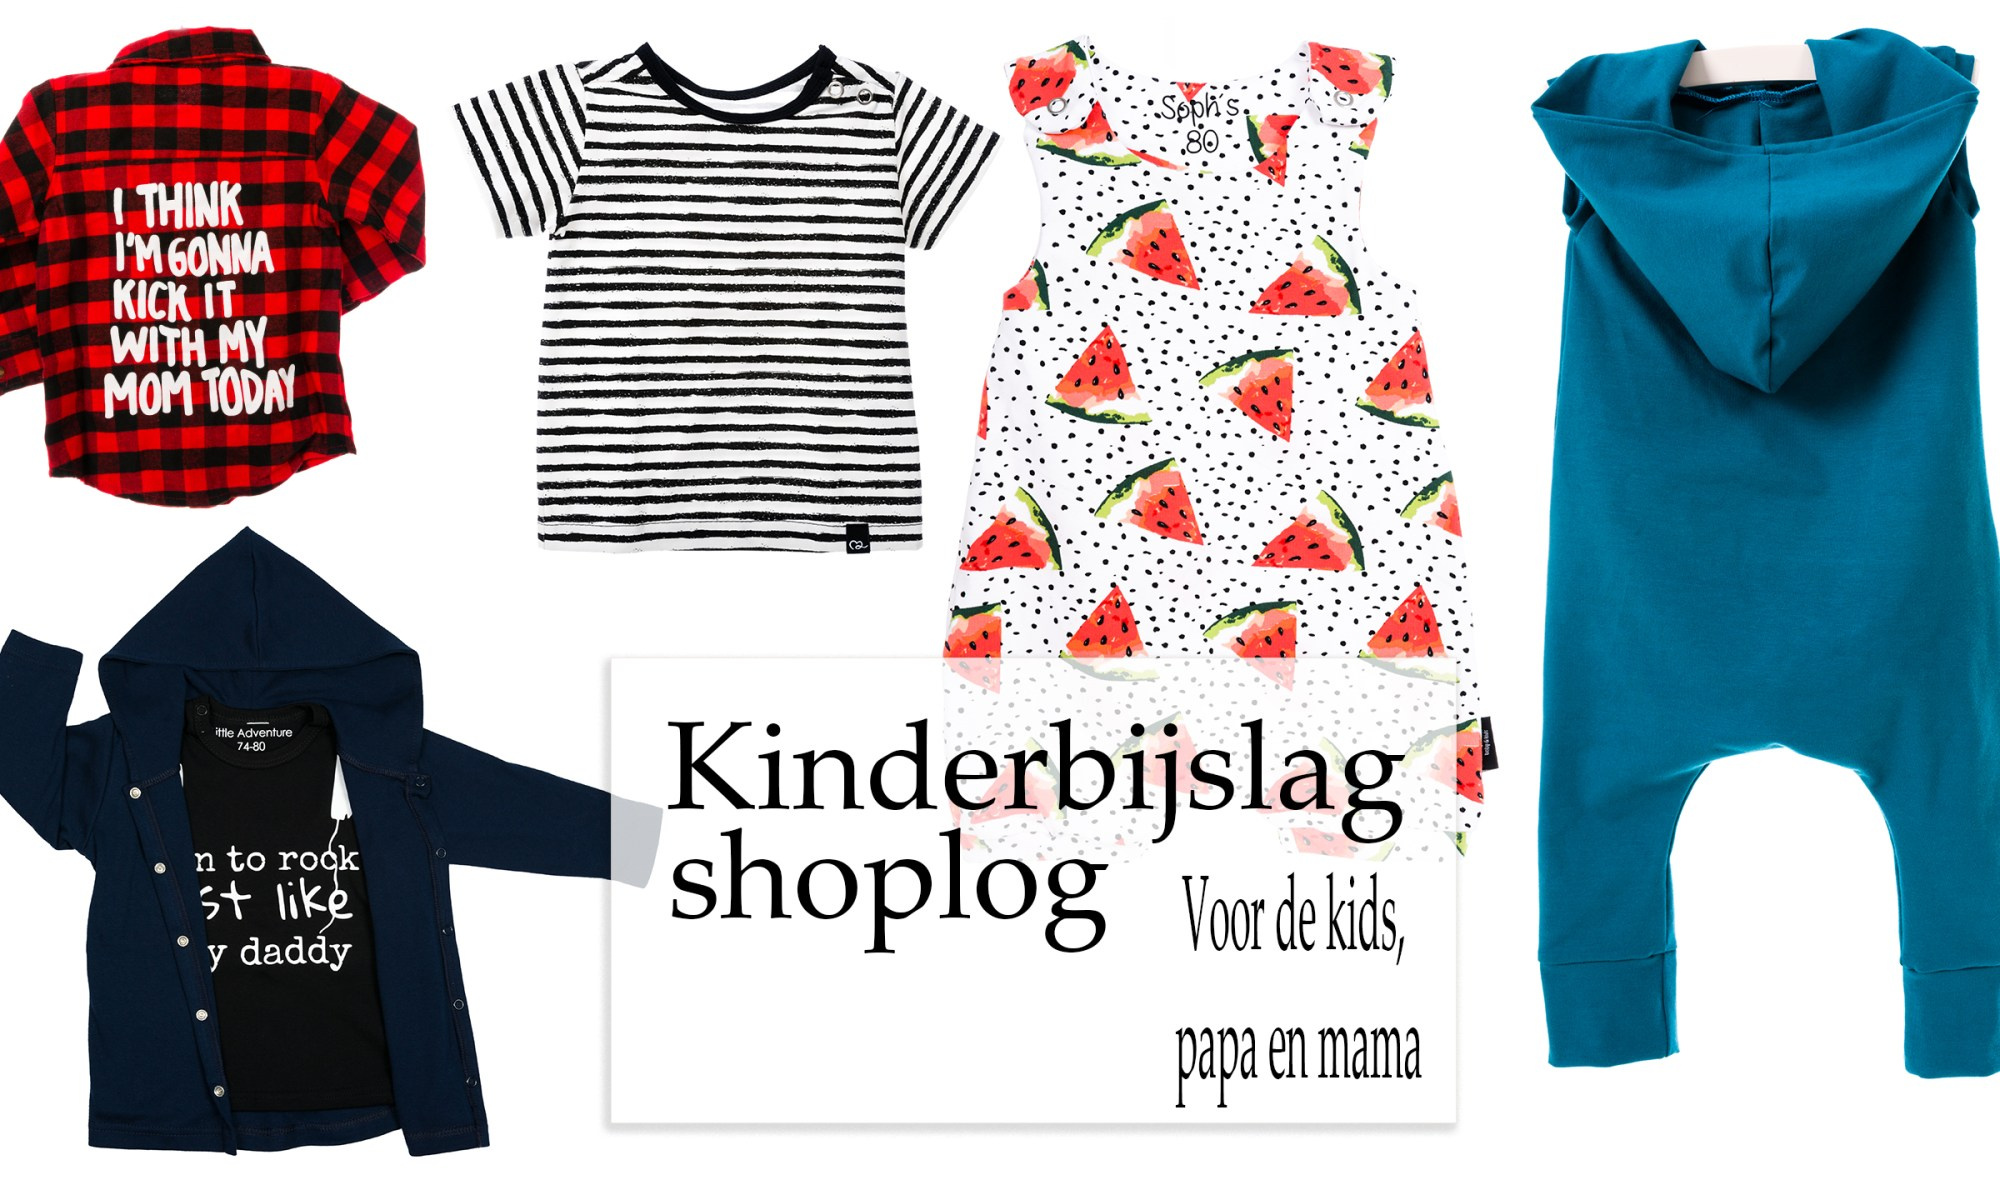 Kinderbijslag shoplog shoppen gekocht aankopen mama blog www.liefkleinwonder.nl wit laminaat v-groef kwantum krukje r-rebels coolcat Little Adventure Sweet and small